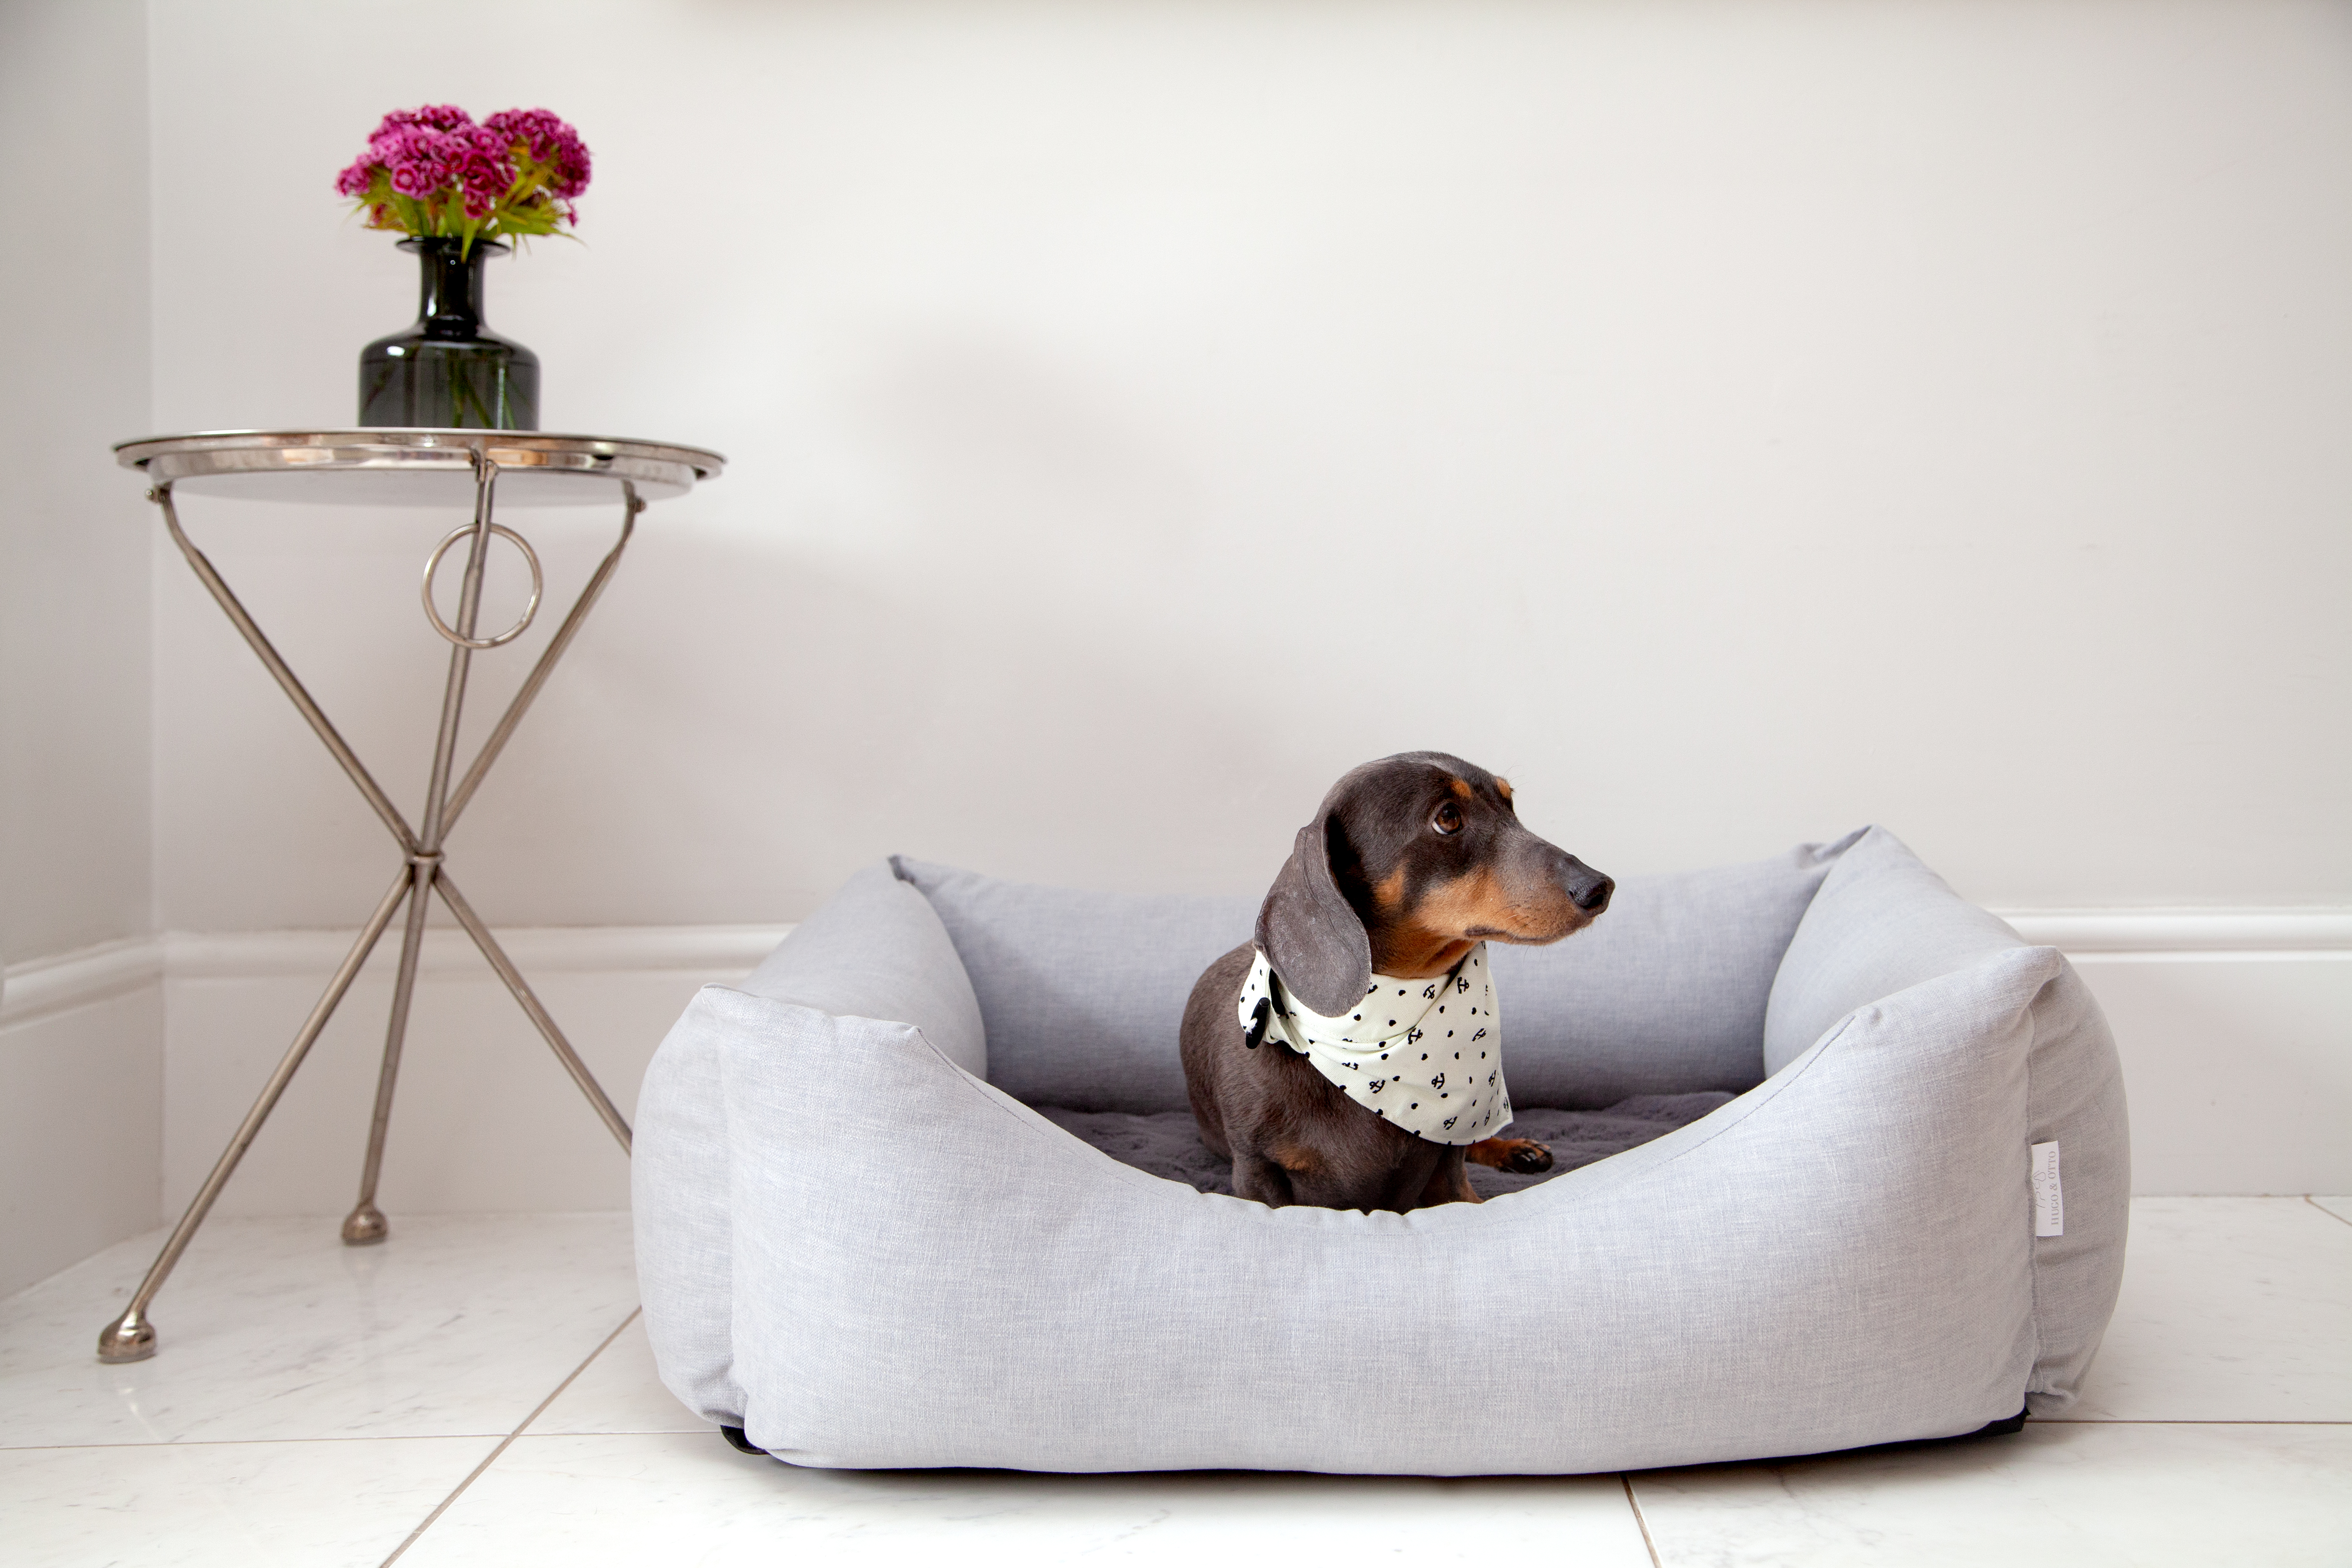 Hugo & Otto Stretton Dog Bed Ice, Stretton Dog Bed - Ice, Stretton Dog Bed, Luxury Dog Bed, Luxury Dog Bed with Memory Foam, Memory Foam Luxury Dog Bed, Memory Foam Dog Bed, Easy Access Dog Bed, The Best Dog Bed, The Best Memory Foam Dog Bed, Luxury Dog Baskets, Designer Dog Beds,